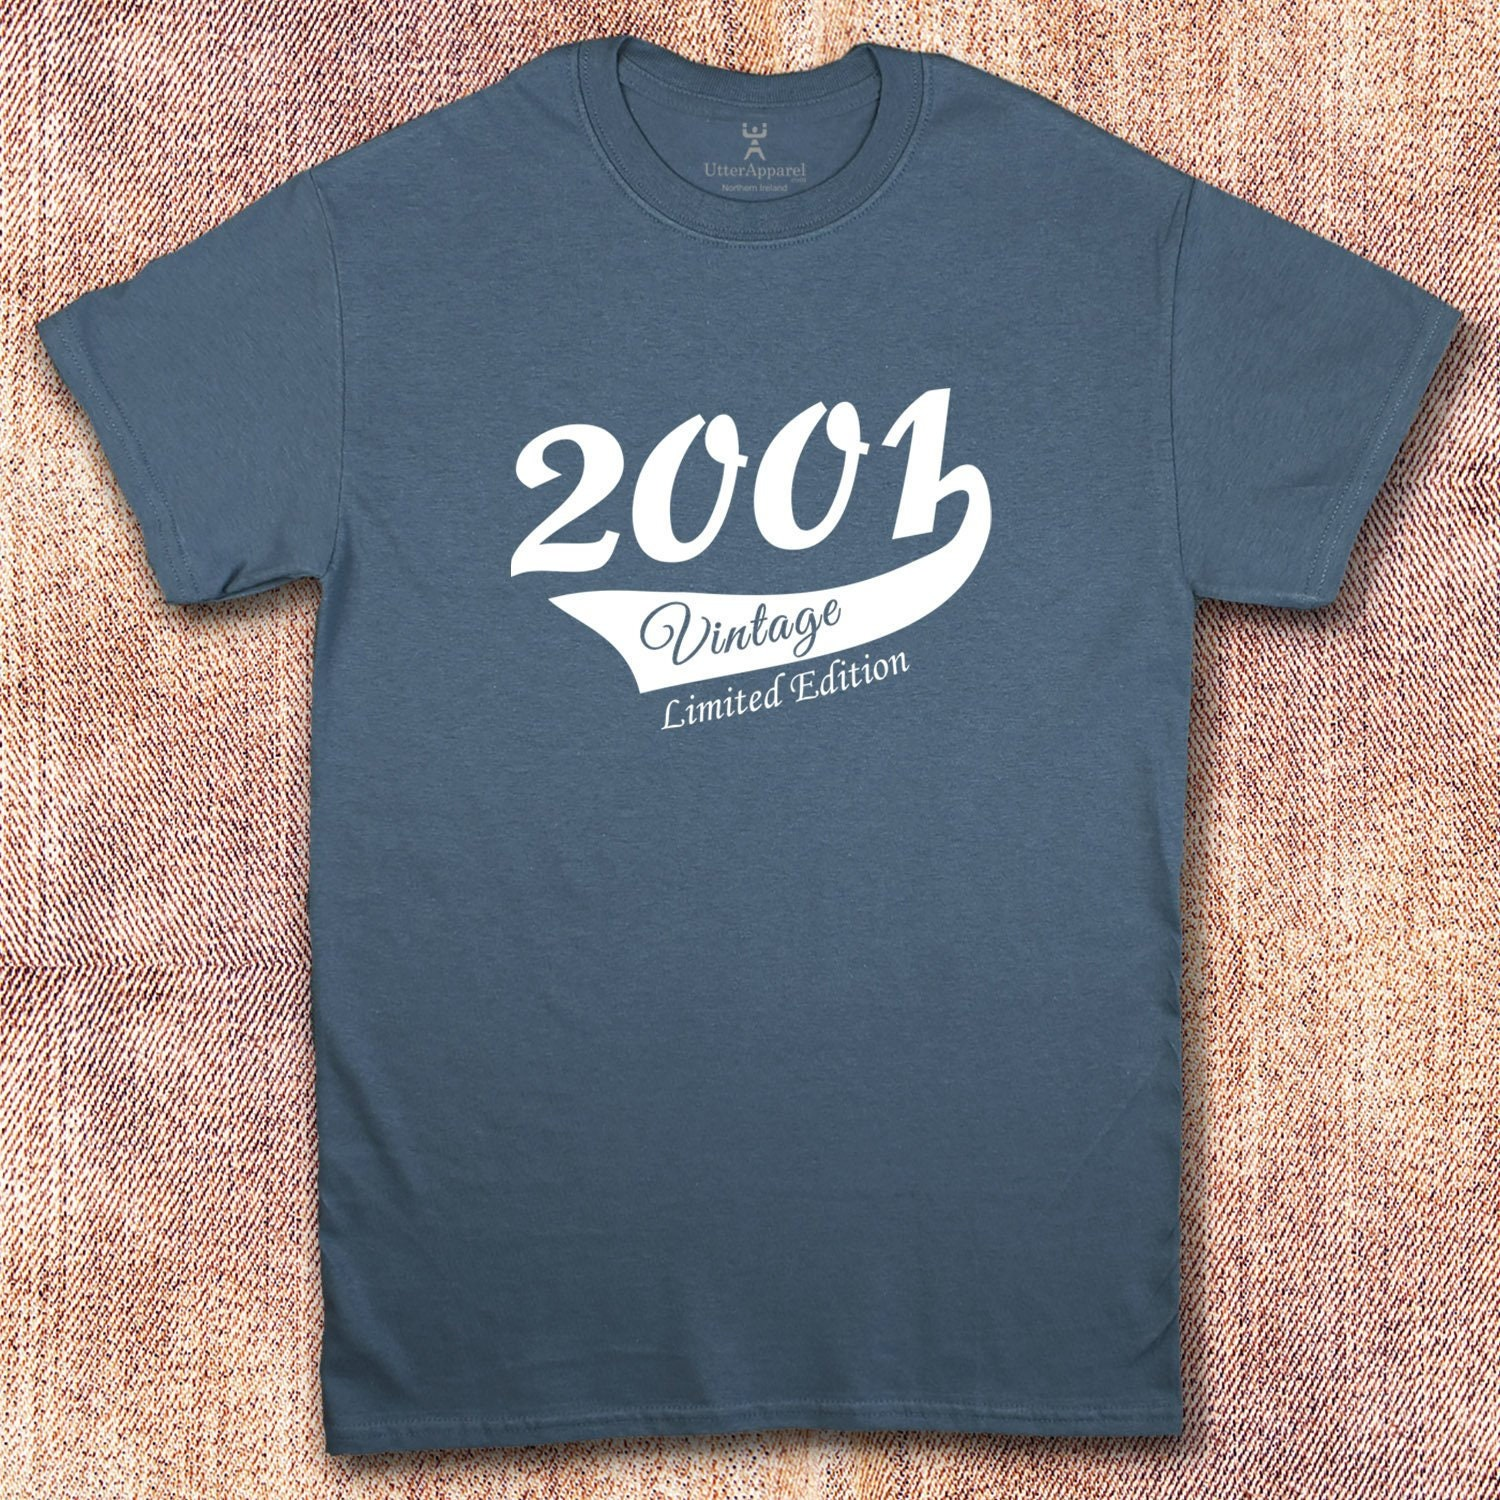 2001 Vintage Limited Edition 18th Birthday Gift For Him Great